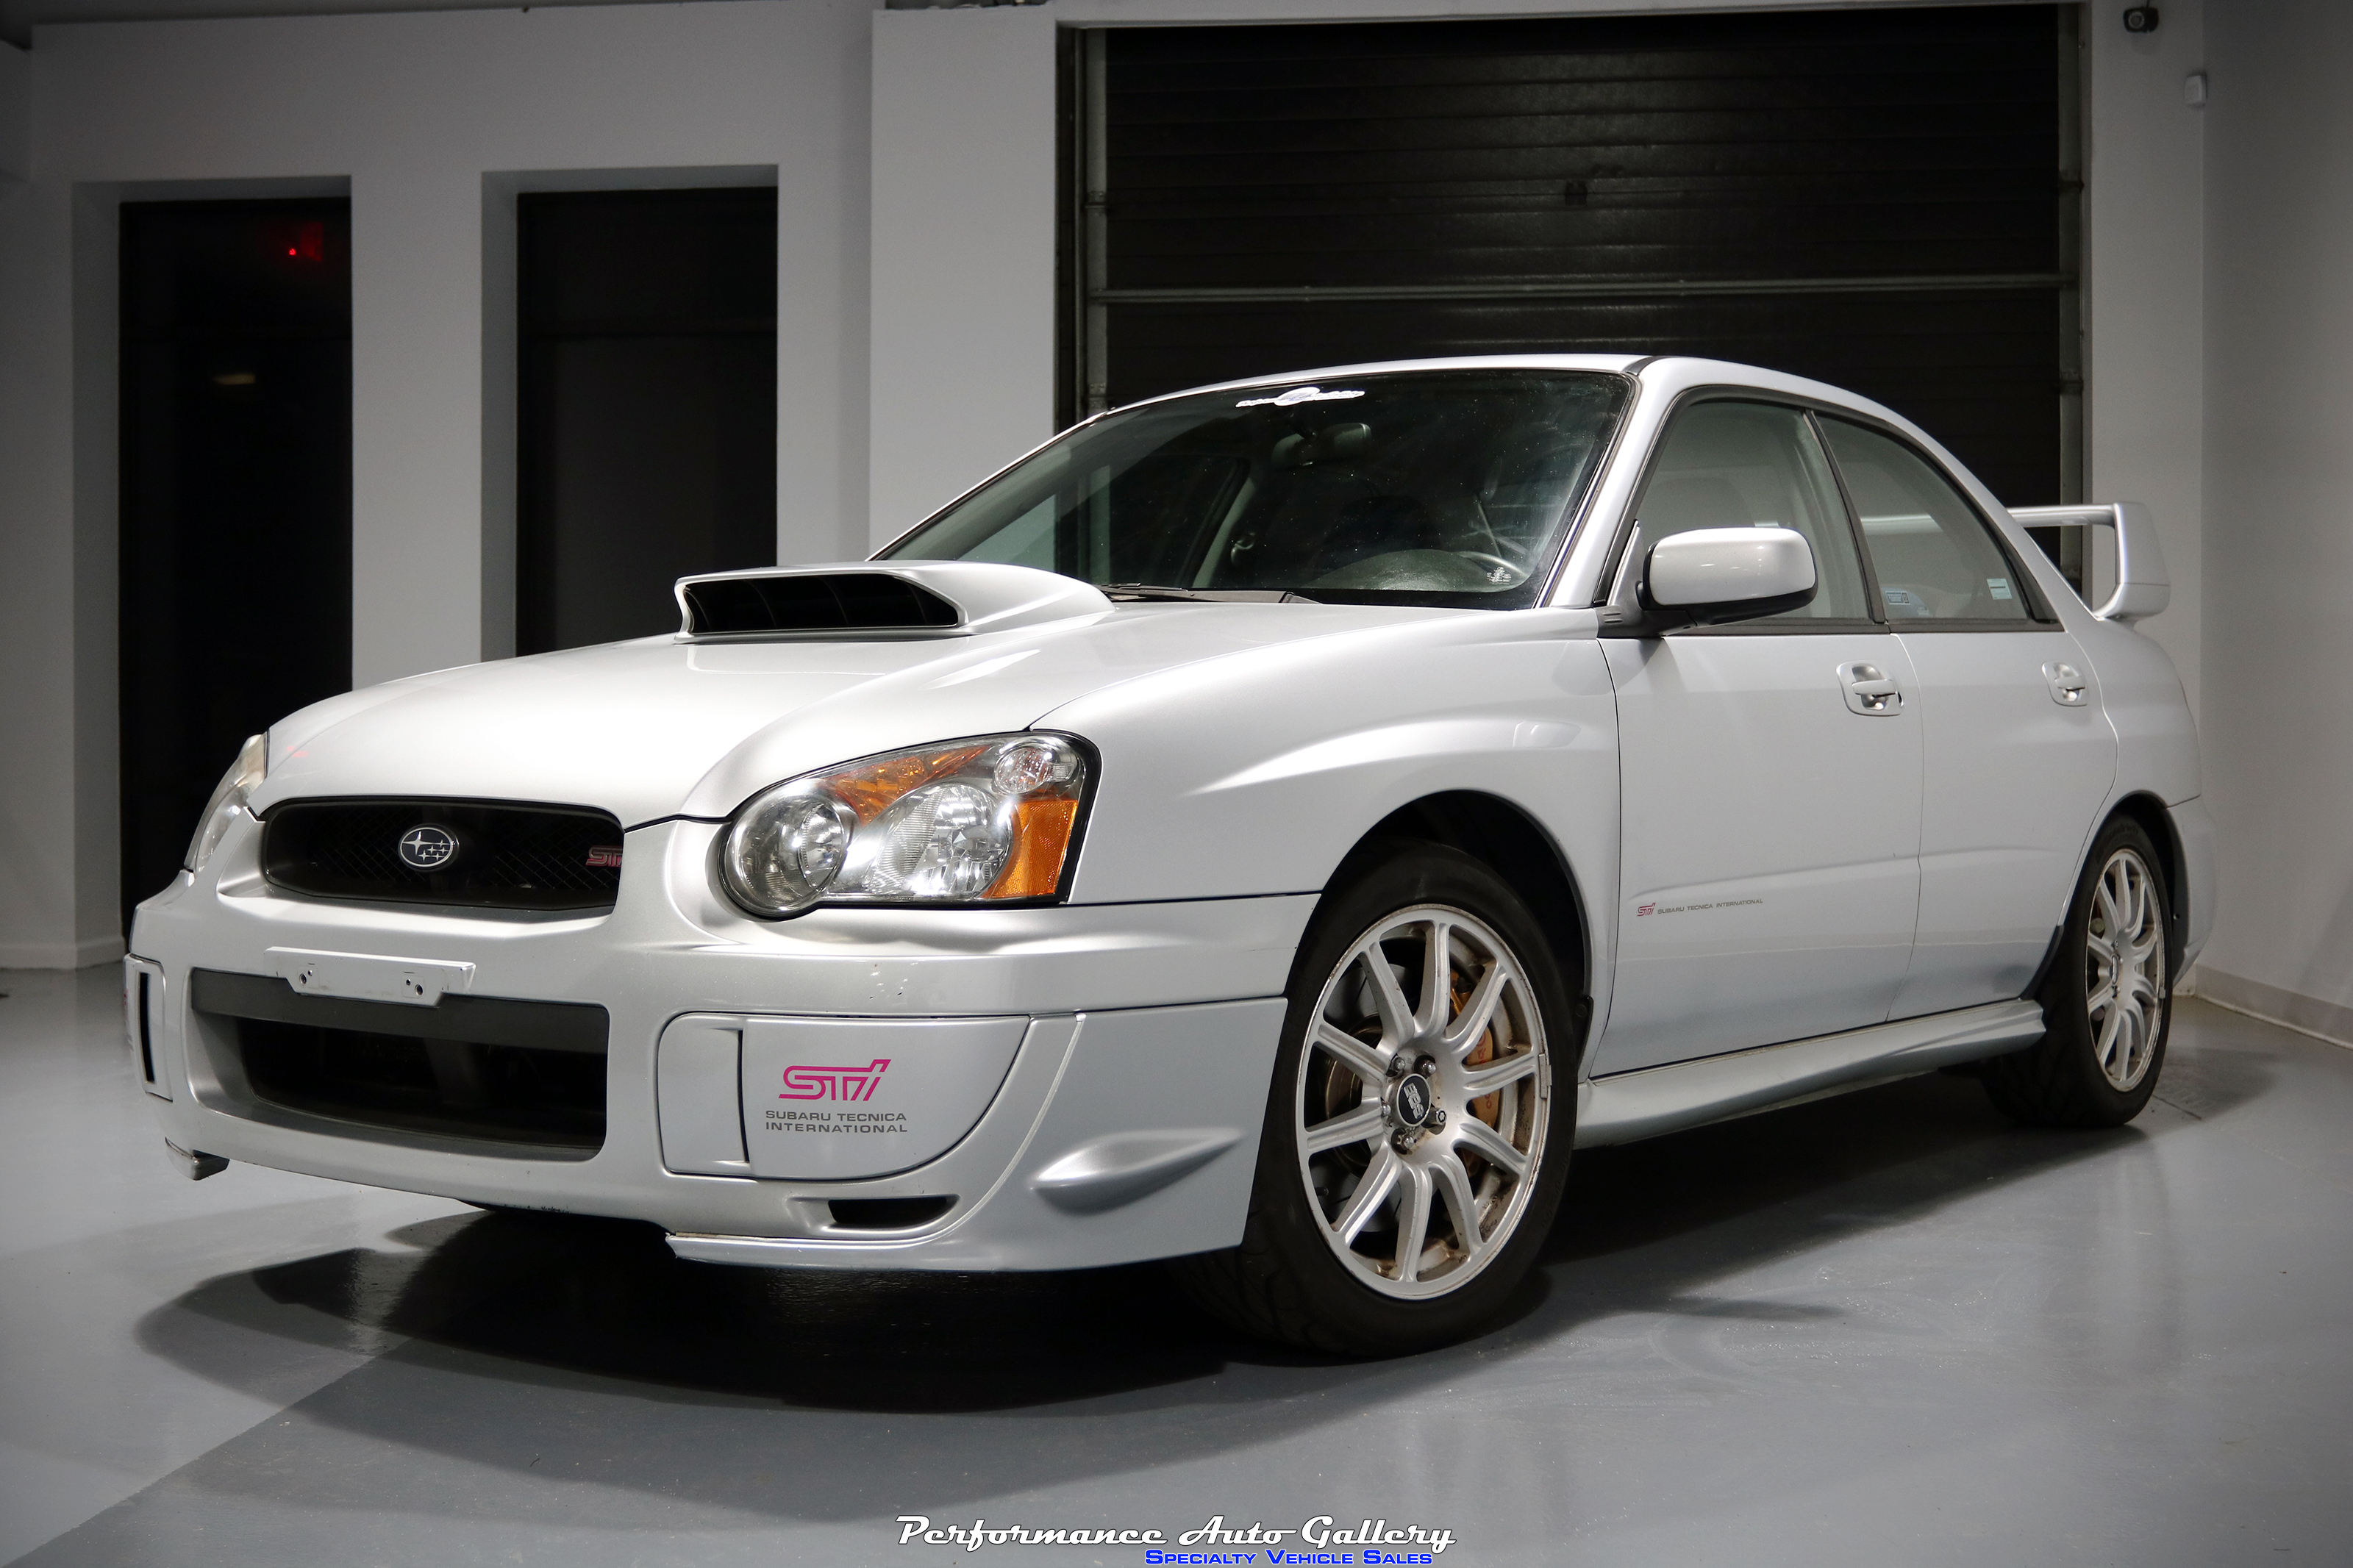 for sale 2004 subaru impreza wrx sti. Black Bedroom Furniture Sets. Home Design Ideas